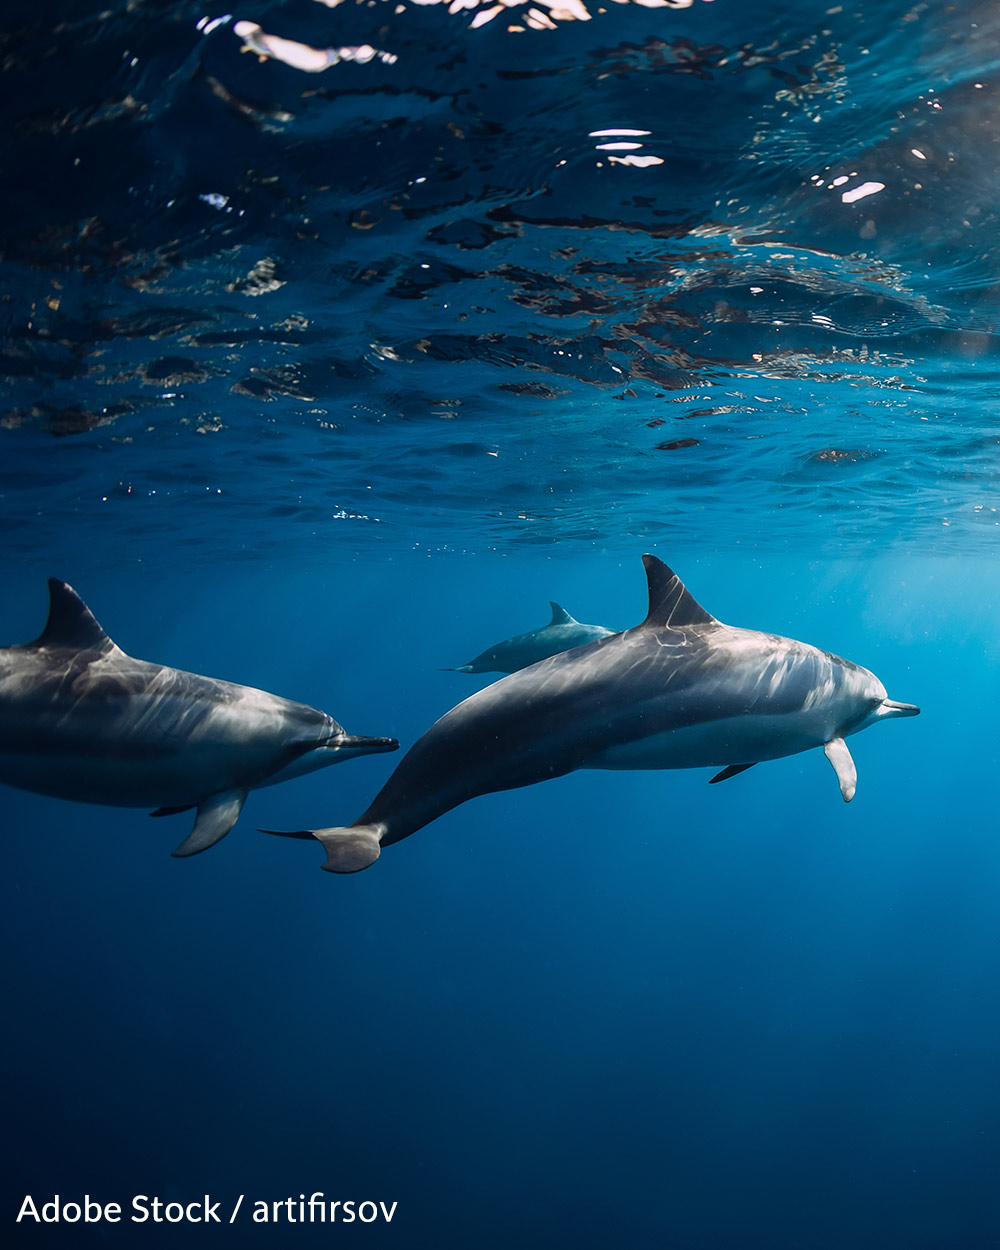 Nursing mothers and their babies are killed when lured into the Cove in Taiji, Japan.